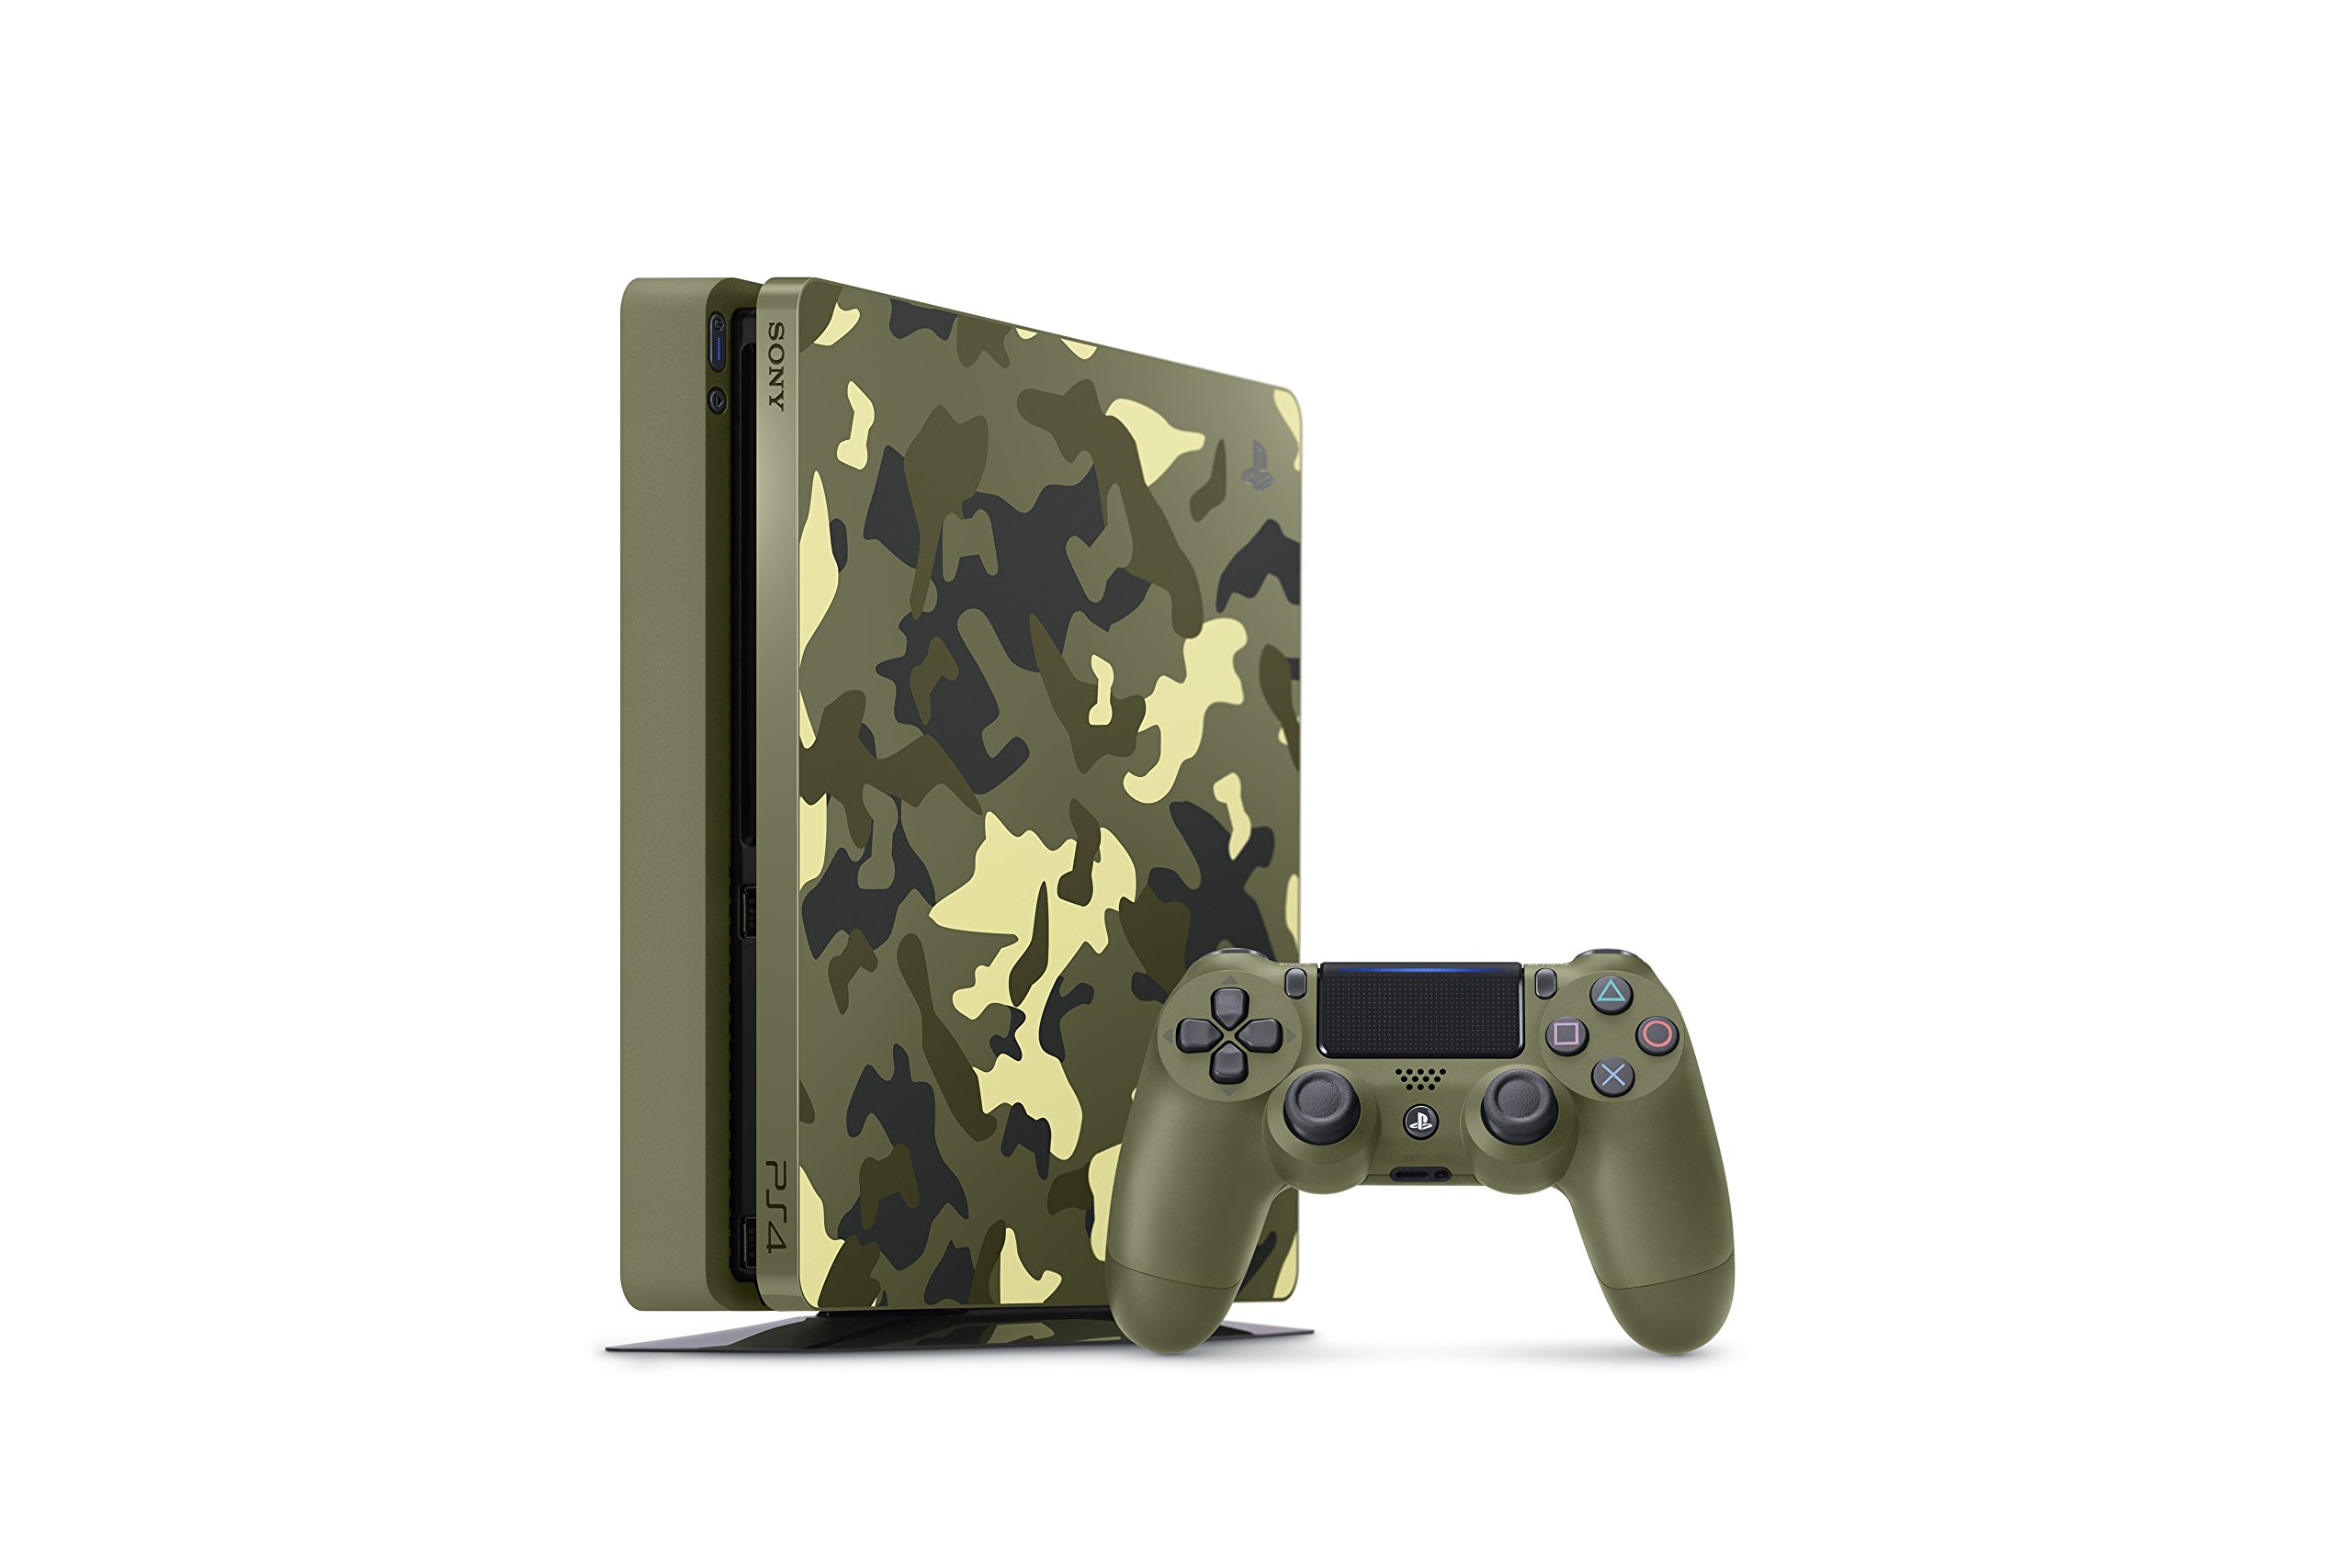 PlayStation 4 Slim 1TB Limited Edition Console - Call of Duty WWII Bundle [Discontinued] by Sony